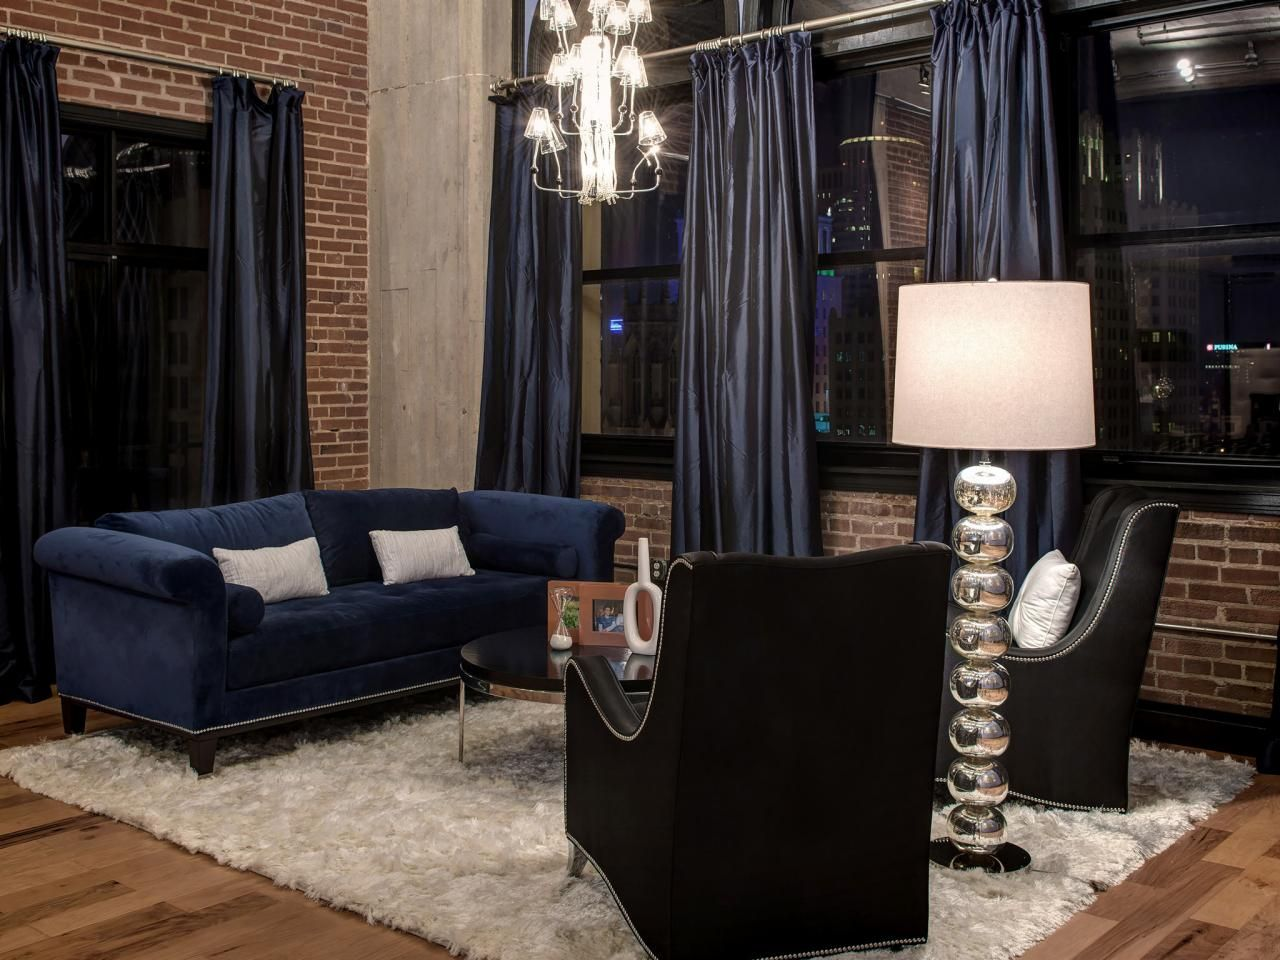 Navy blue bedroom curtains - Navy Blue Curtains And Sofa Combine With Black Leather Chairs To Create An Elegant Feel In